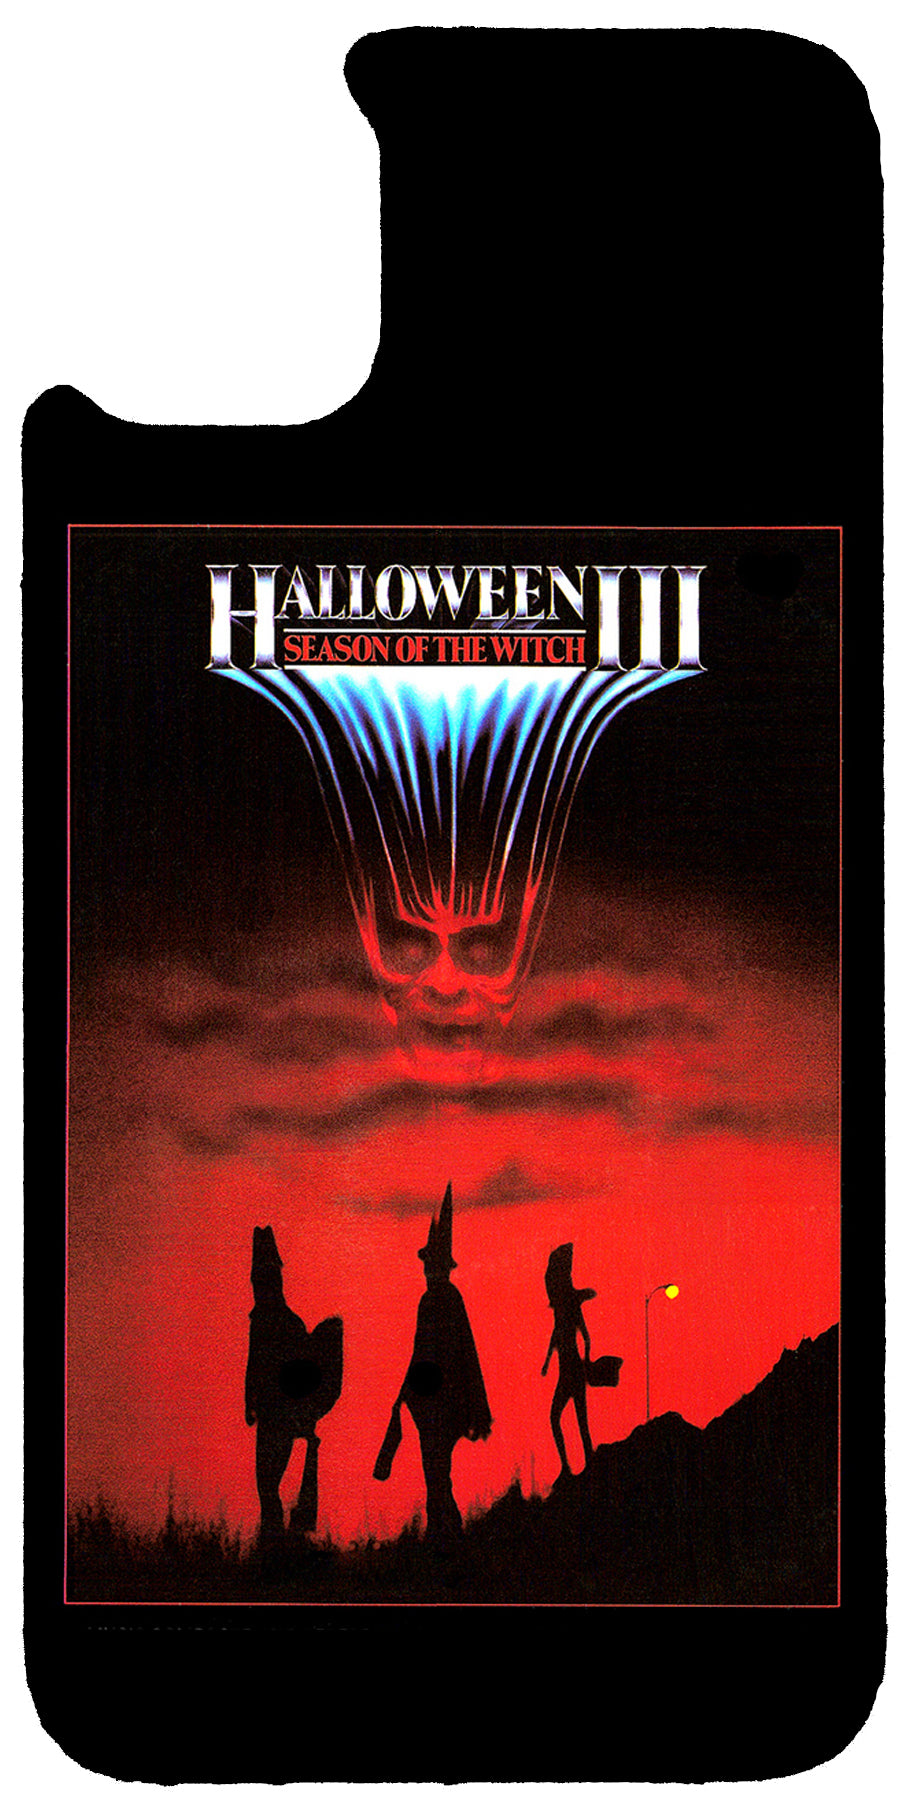 Halloween 3 - Season of the Witch